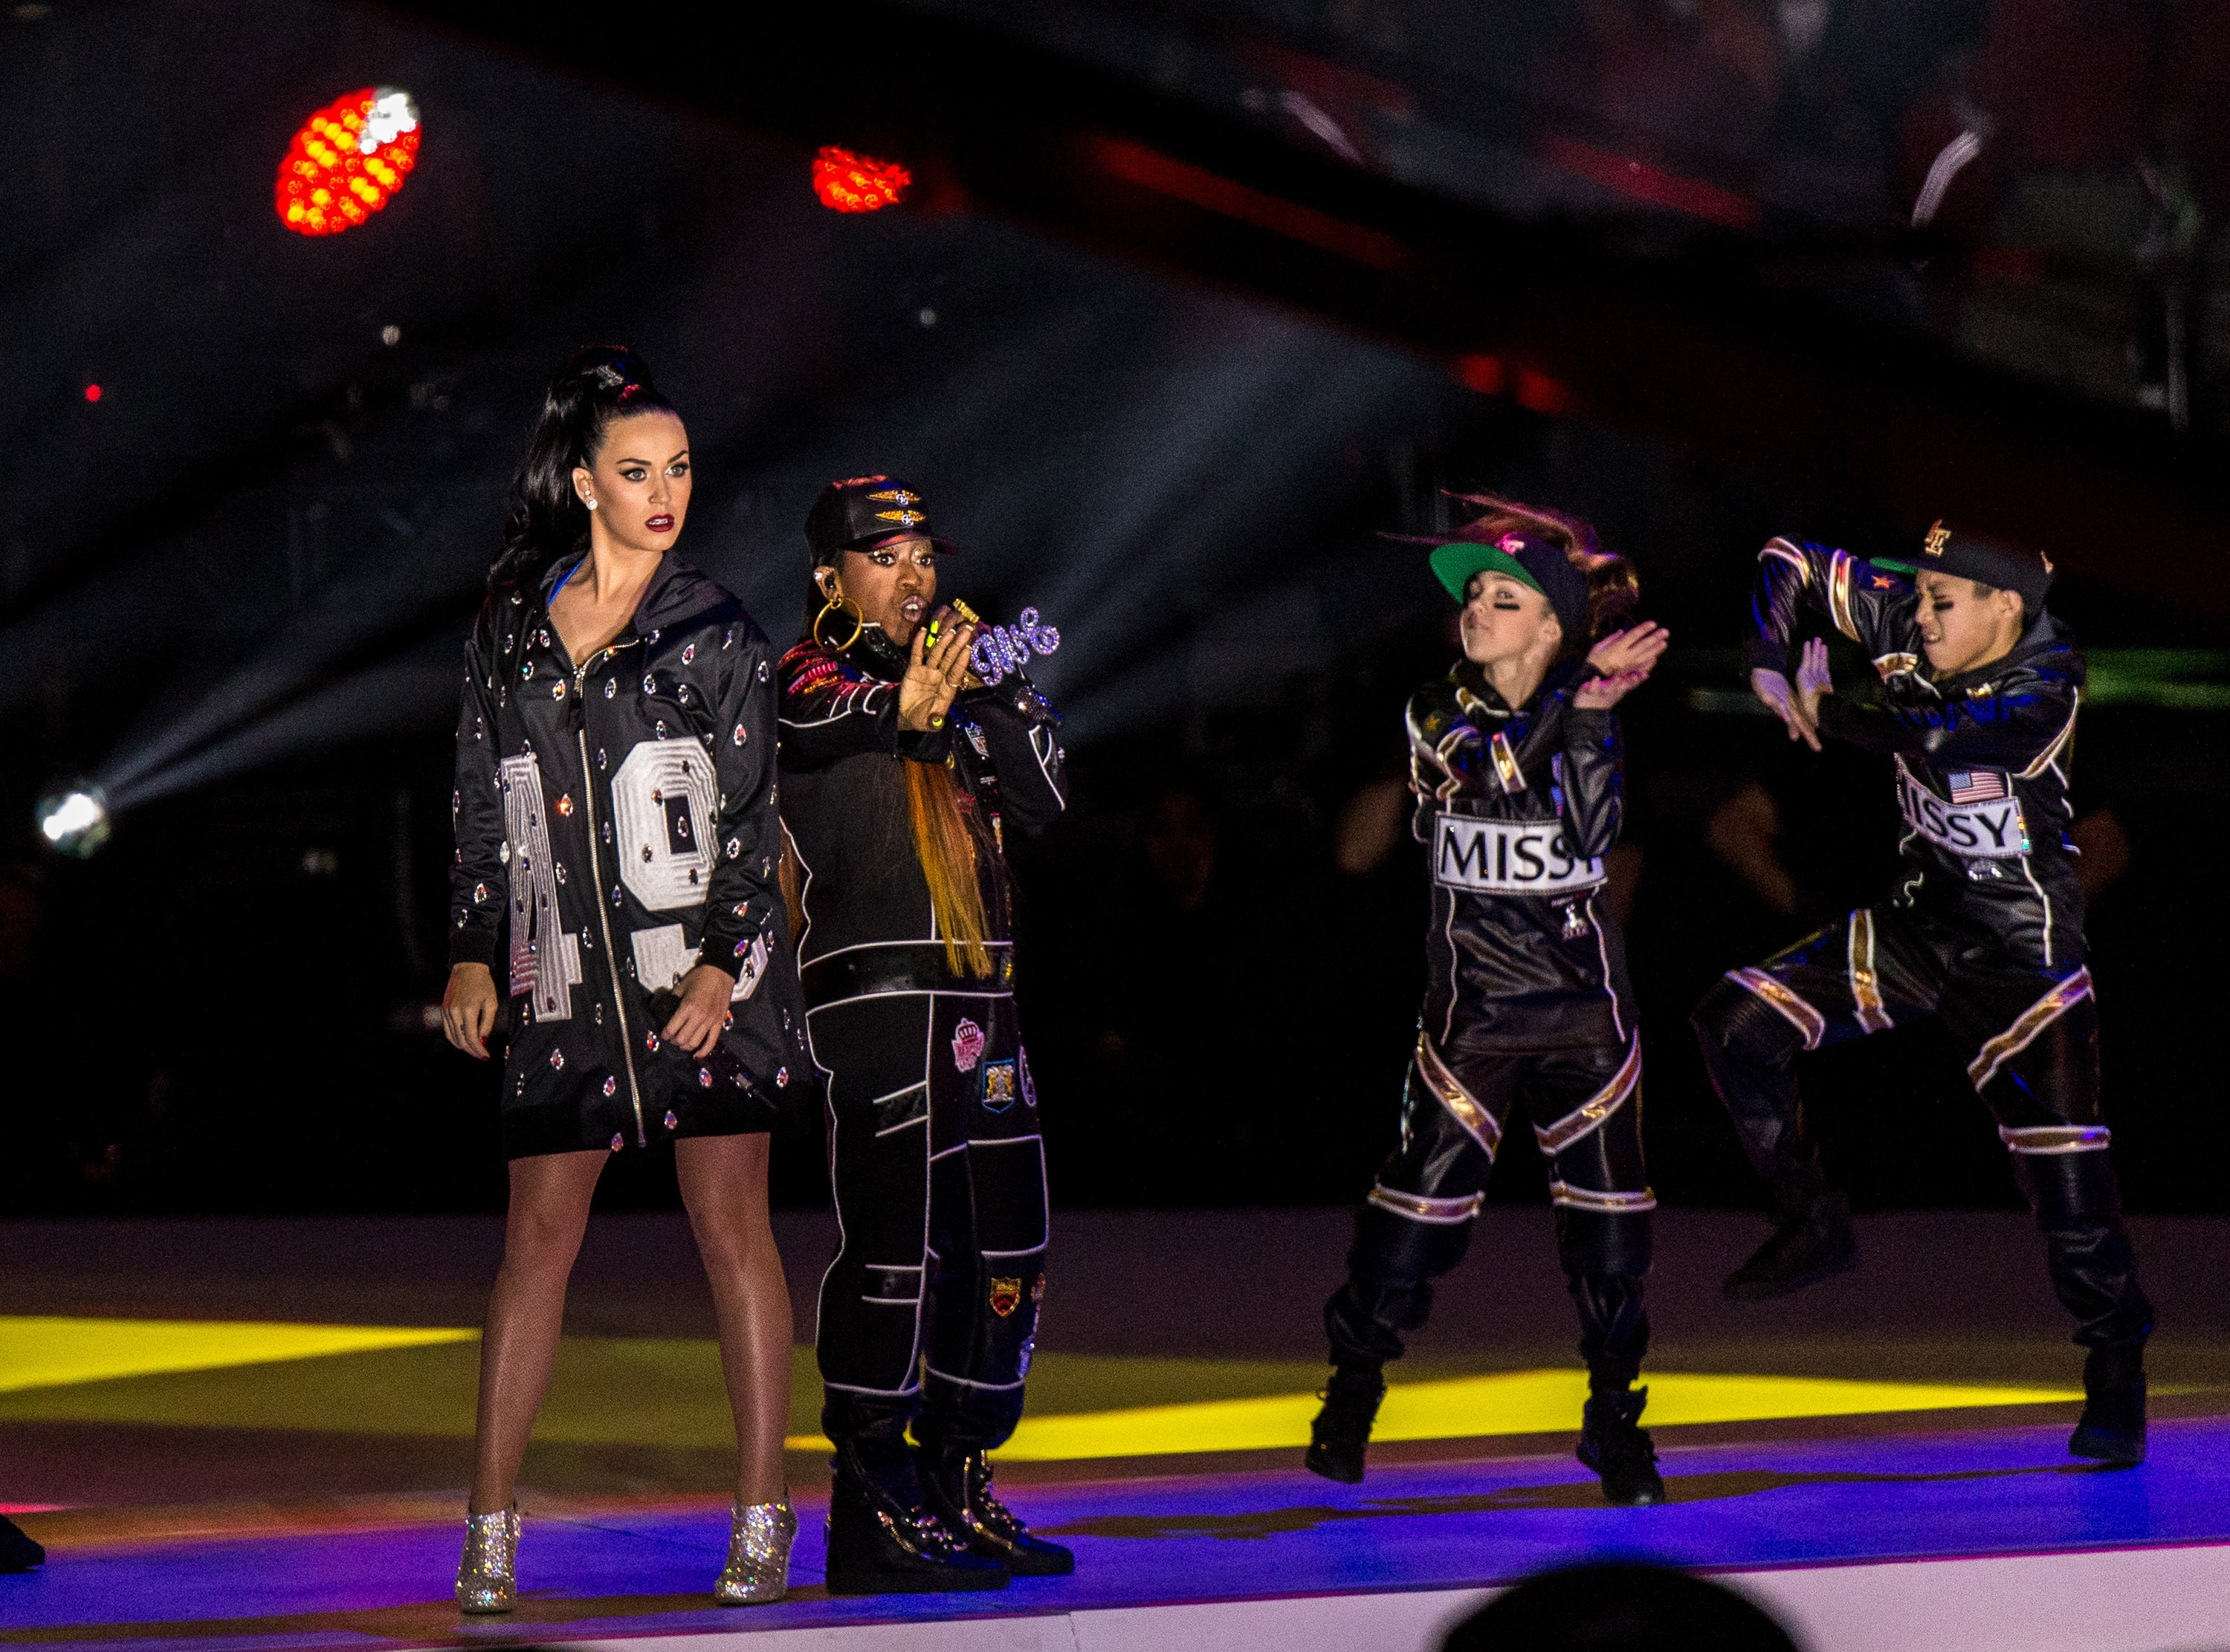 Missy Elliott Totally Stole The Show During The Super Bowl pertaining to Missy Elliott Super Bowl